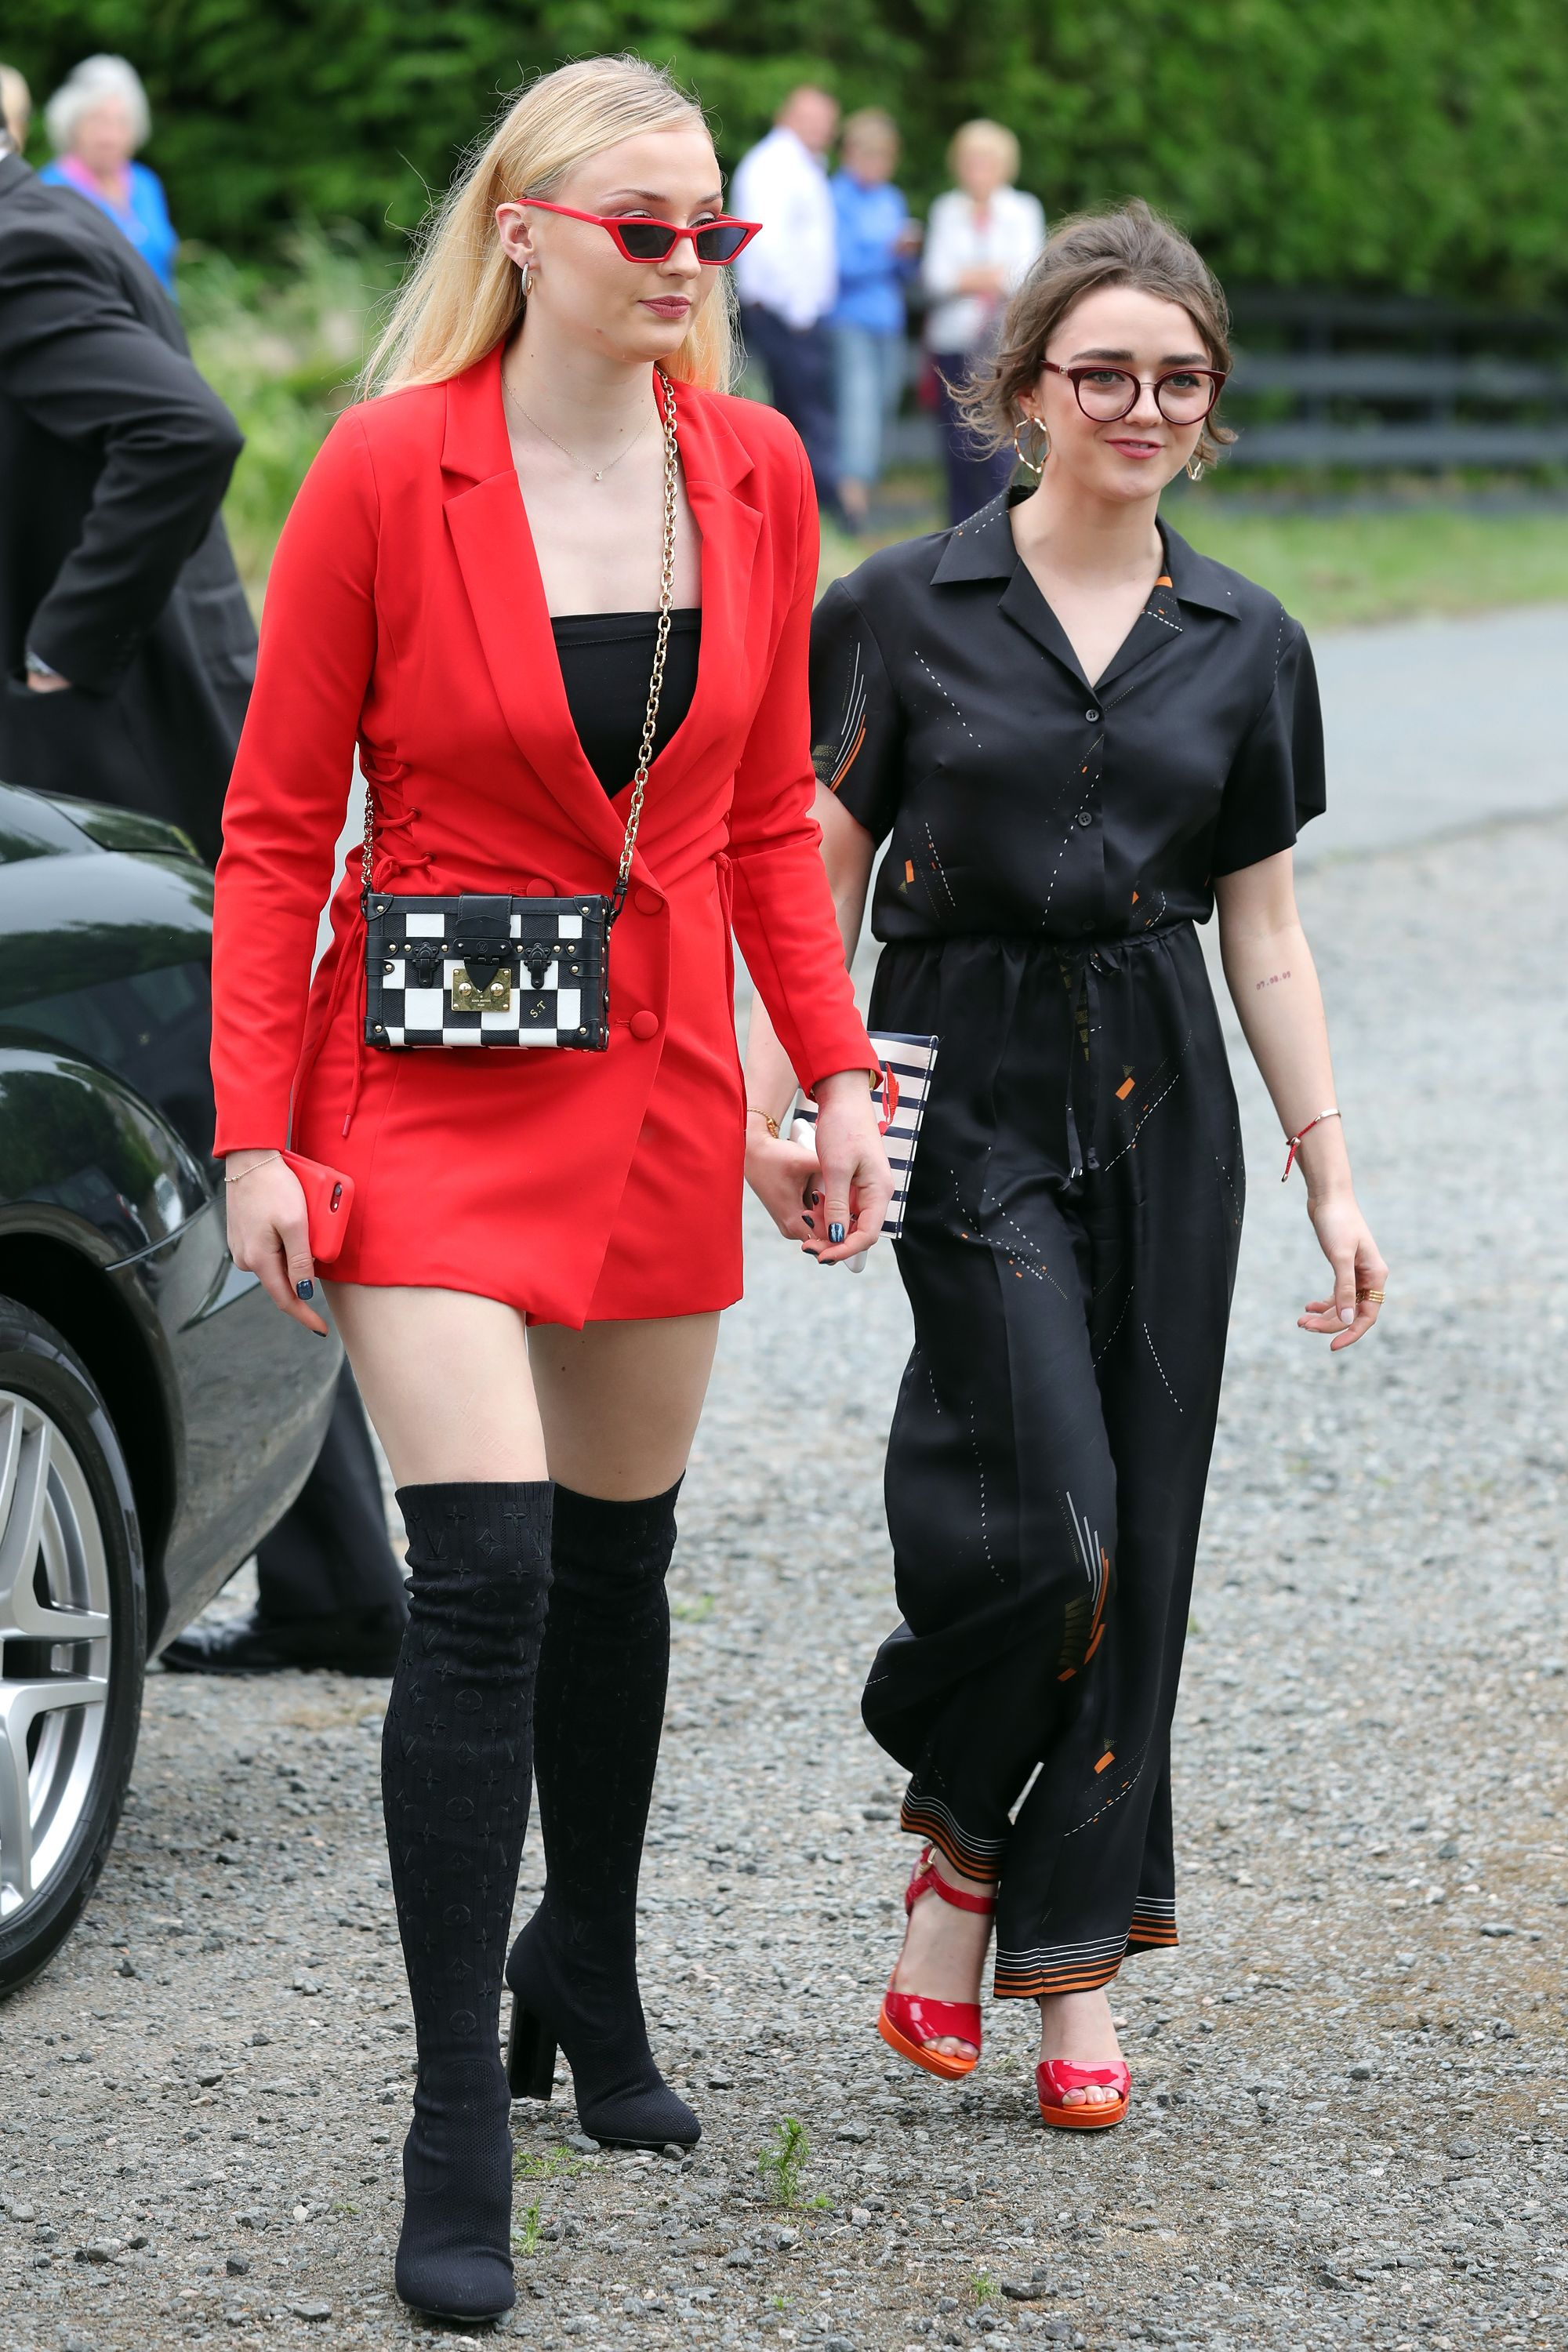 Game of thrones actress maisie williams and sophie turner